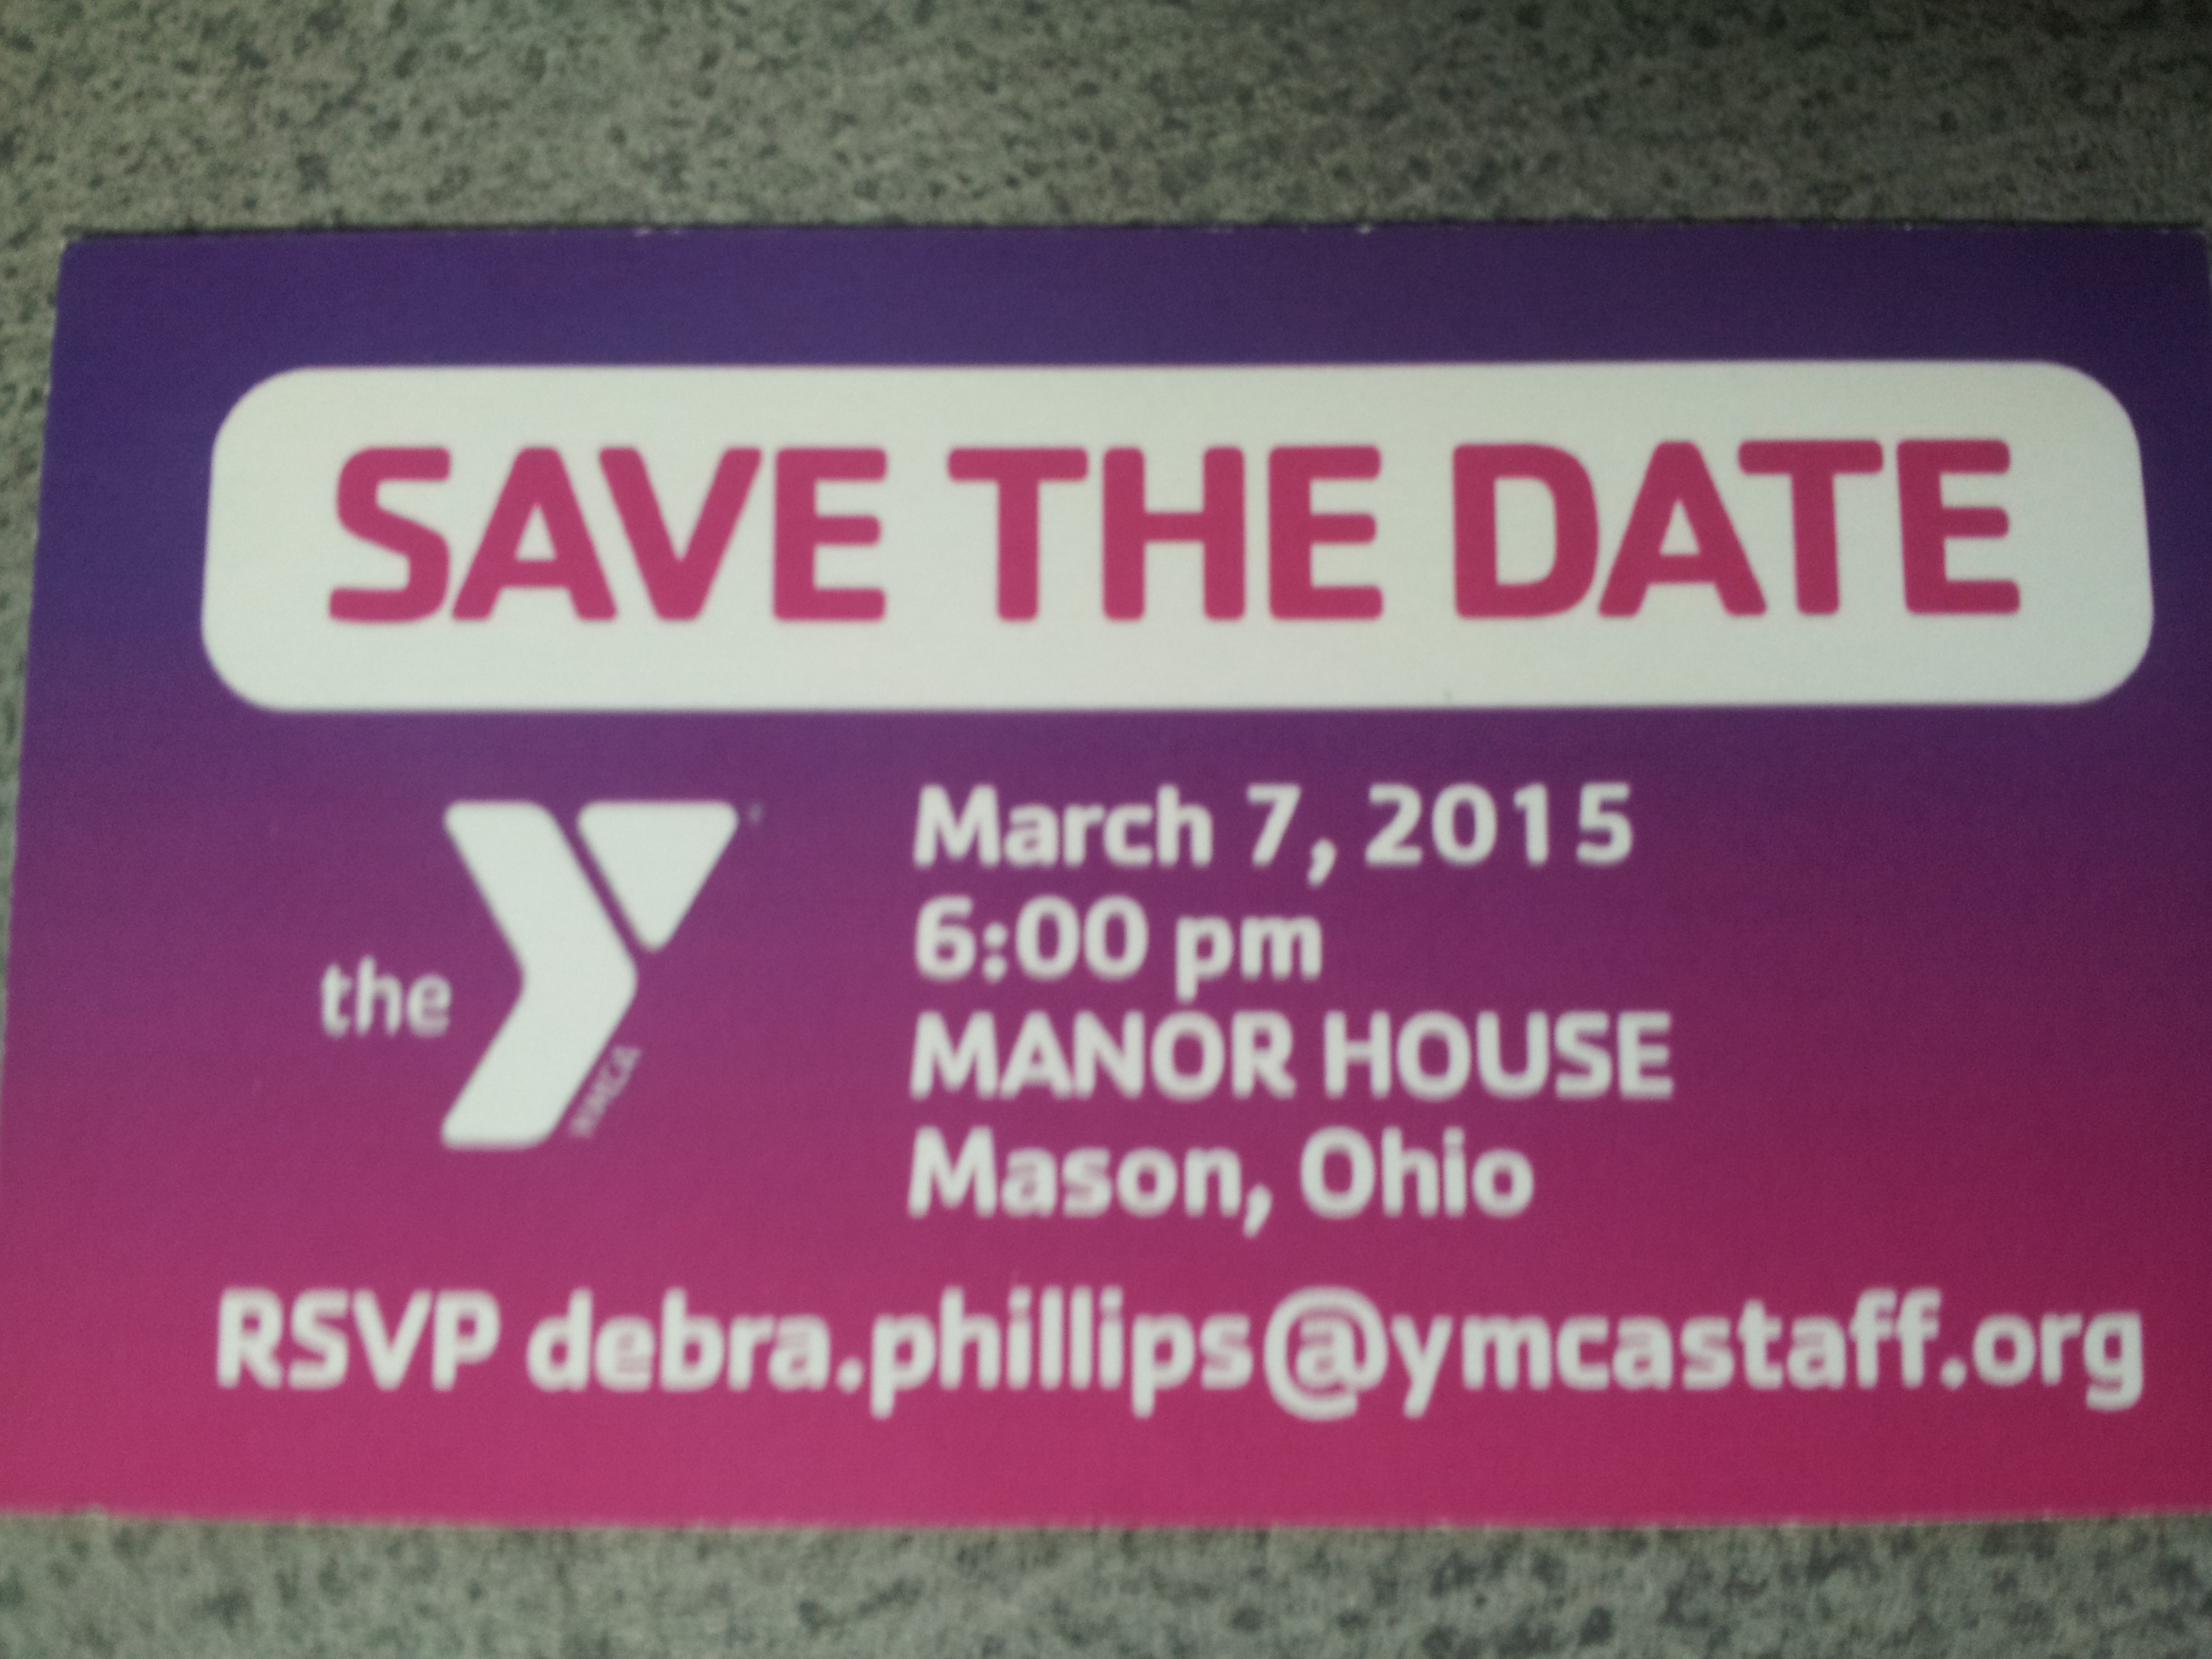 YMCA save the date 2015